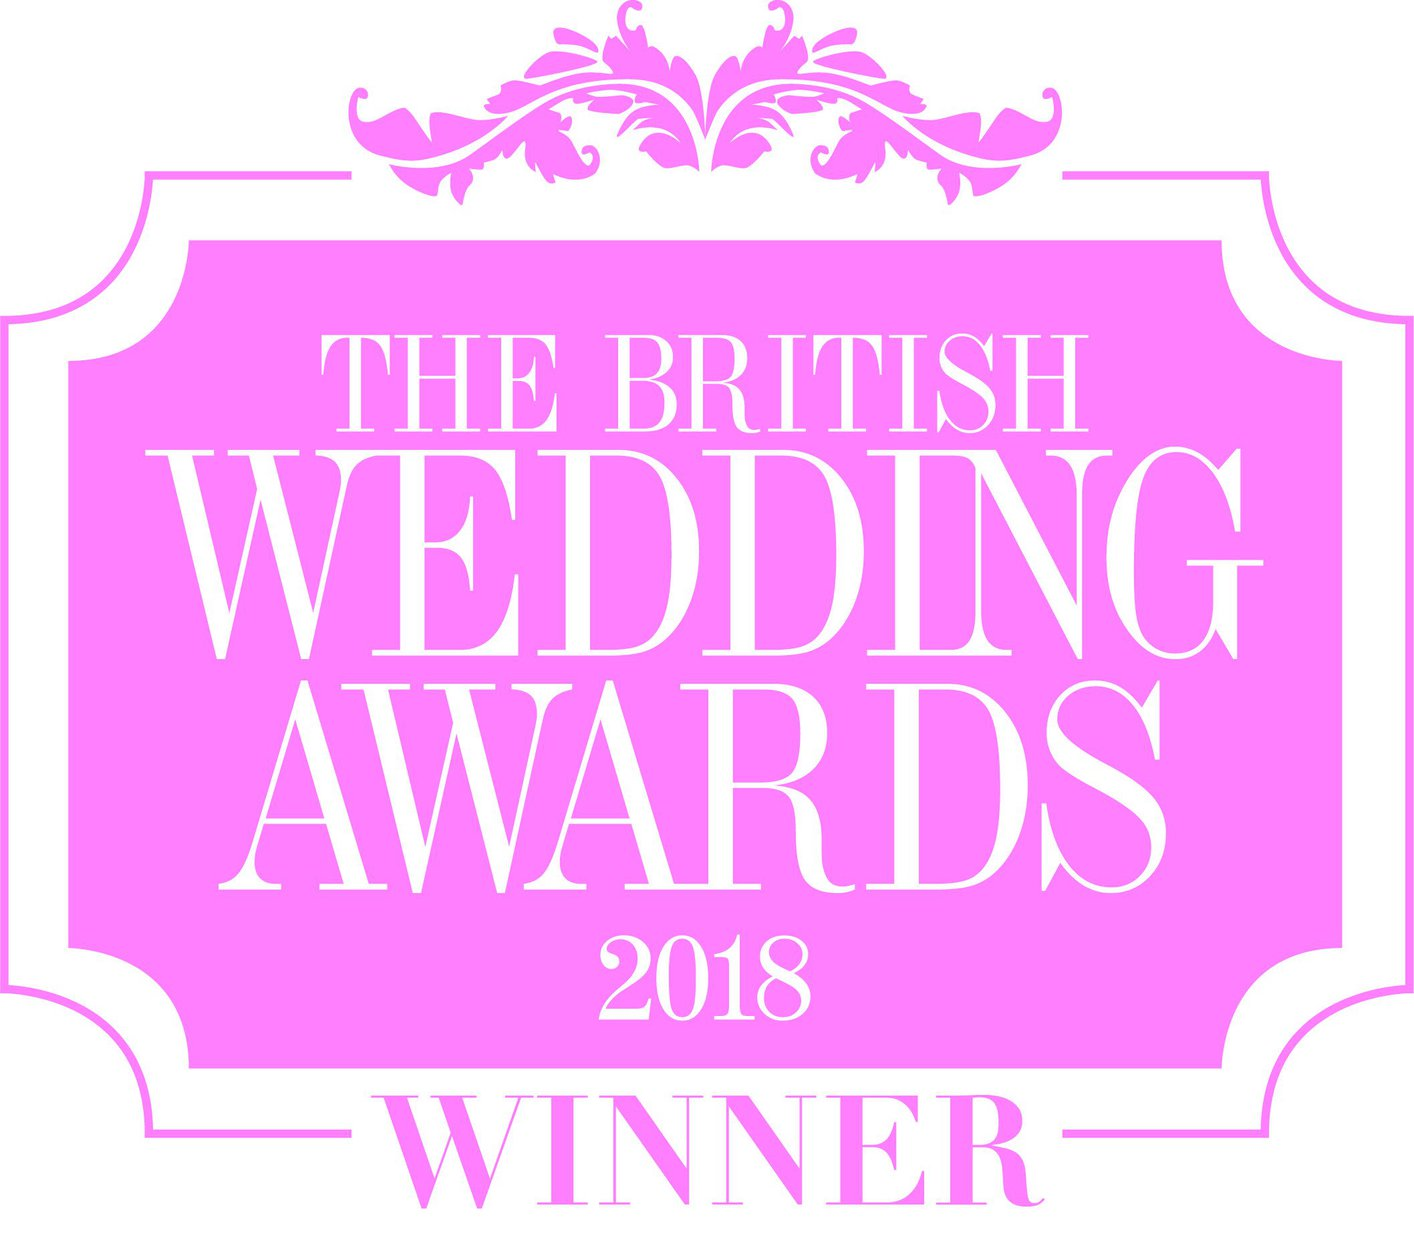 Multi-Award winning Bridal Boutique